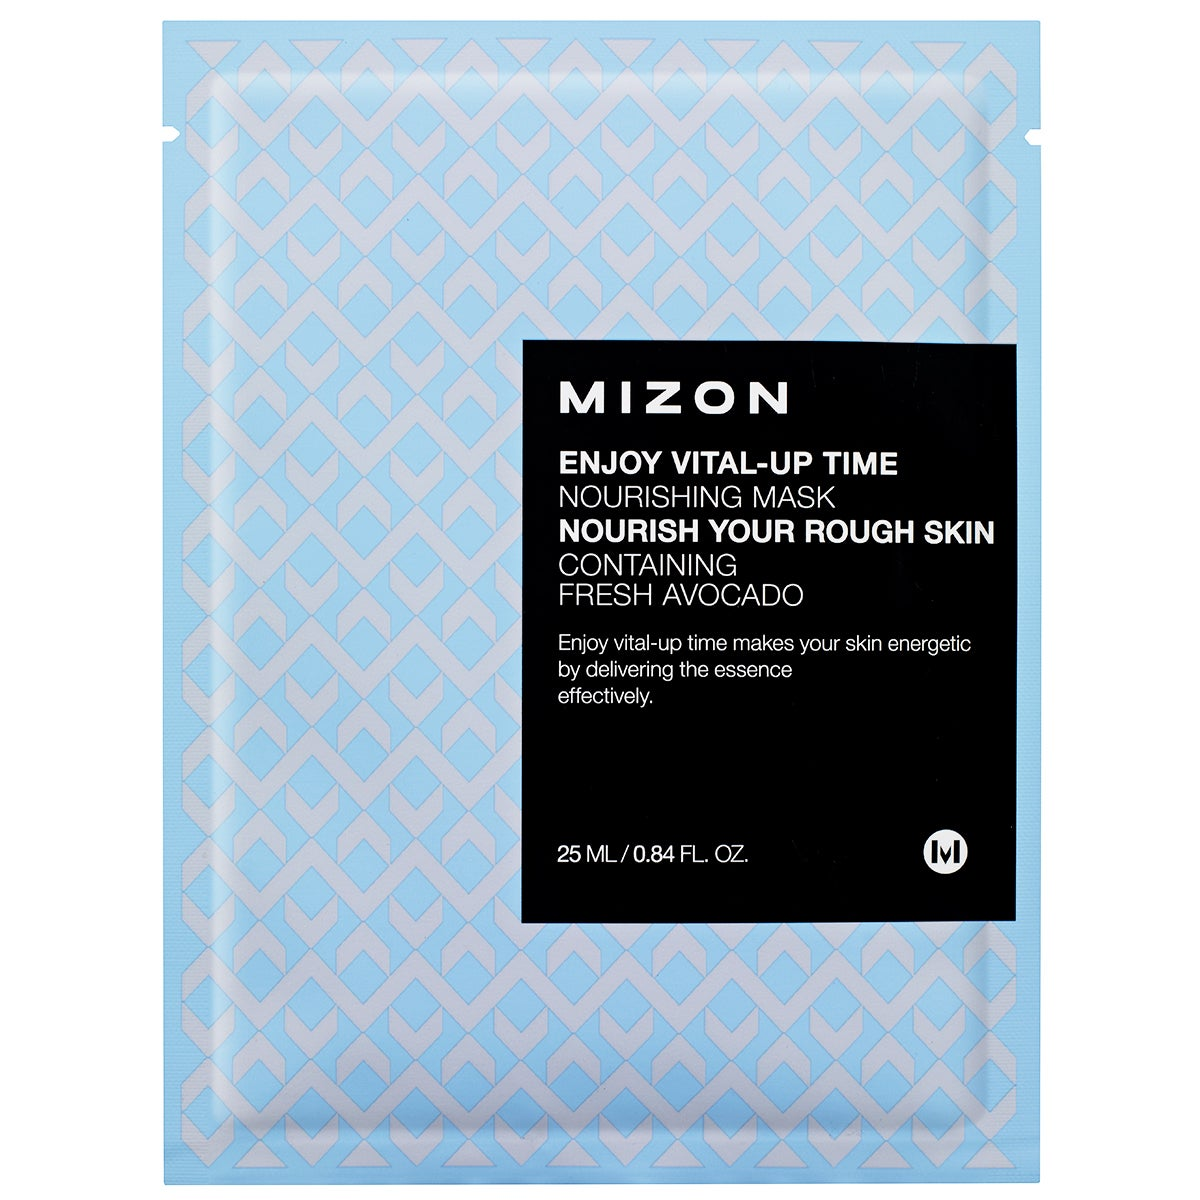 Mizon Enjoy Vital-Up Time, Nourishing Mask